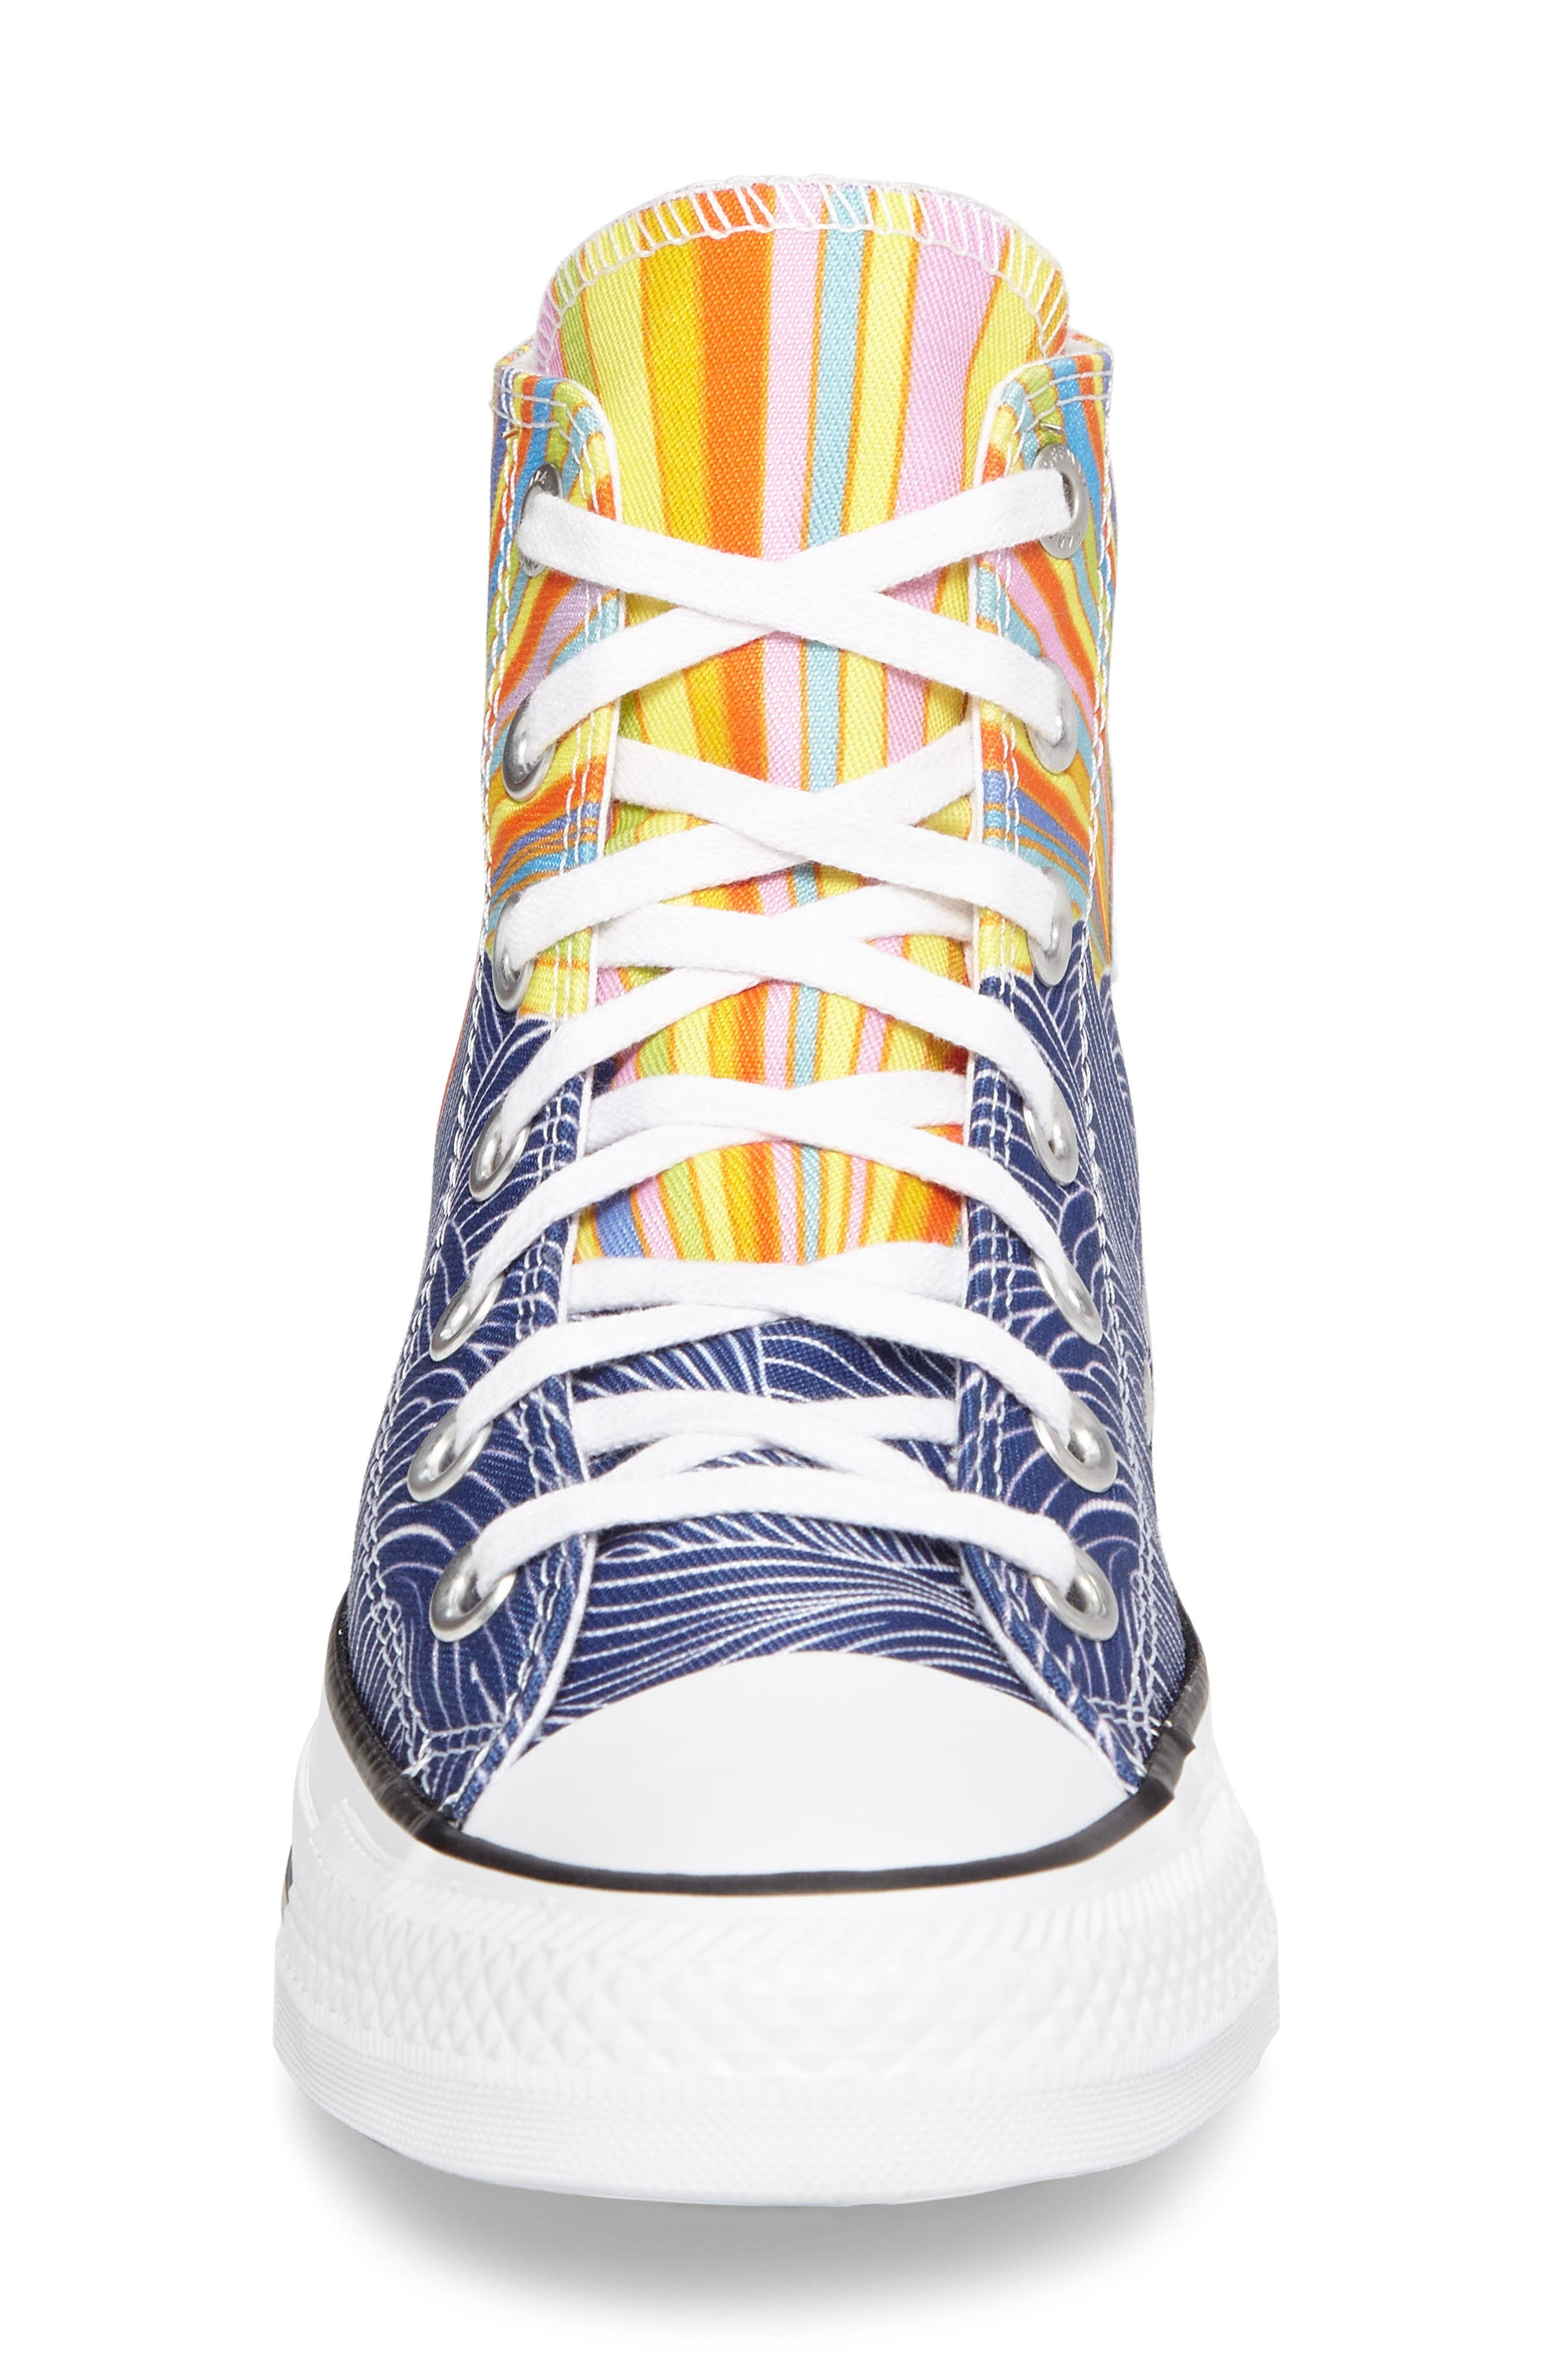 x Mara Hoffman All Star<sup>®</sup> Embroidered High Top Sneaker,                             Alternate thumbnail 7, color,